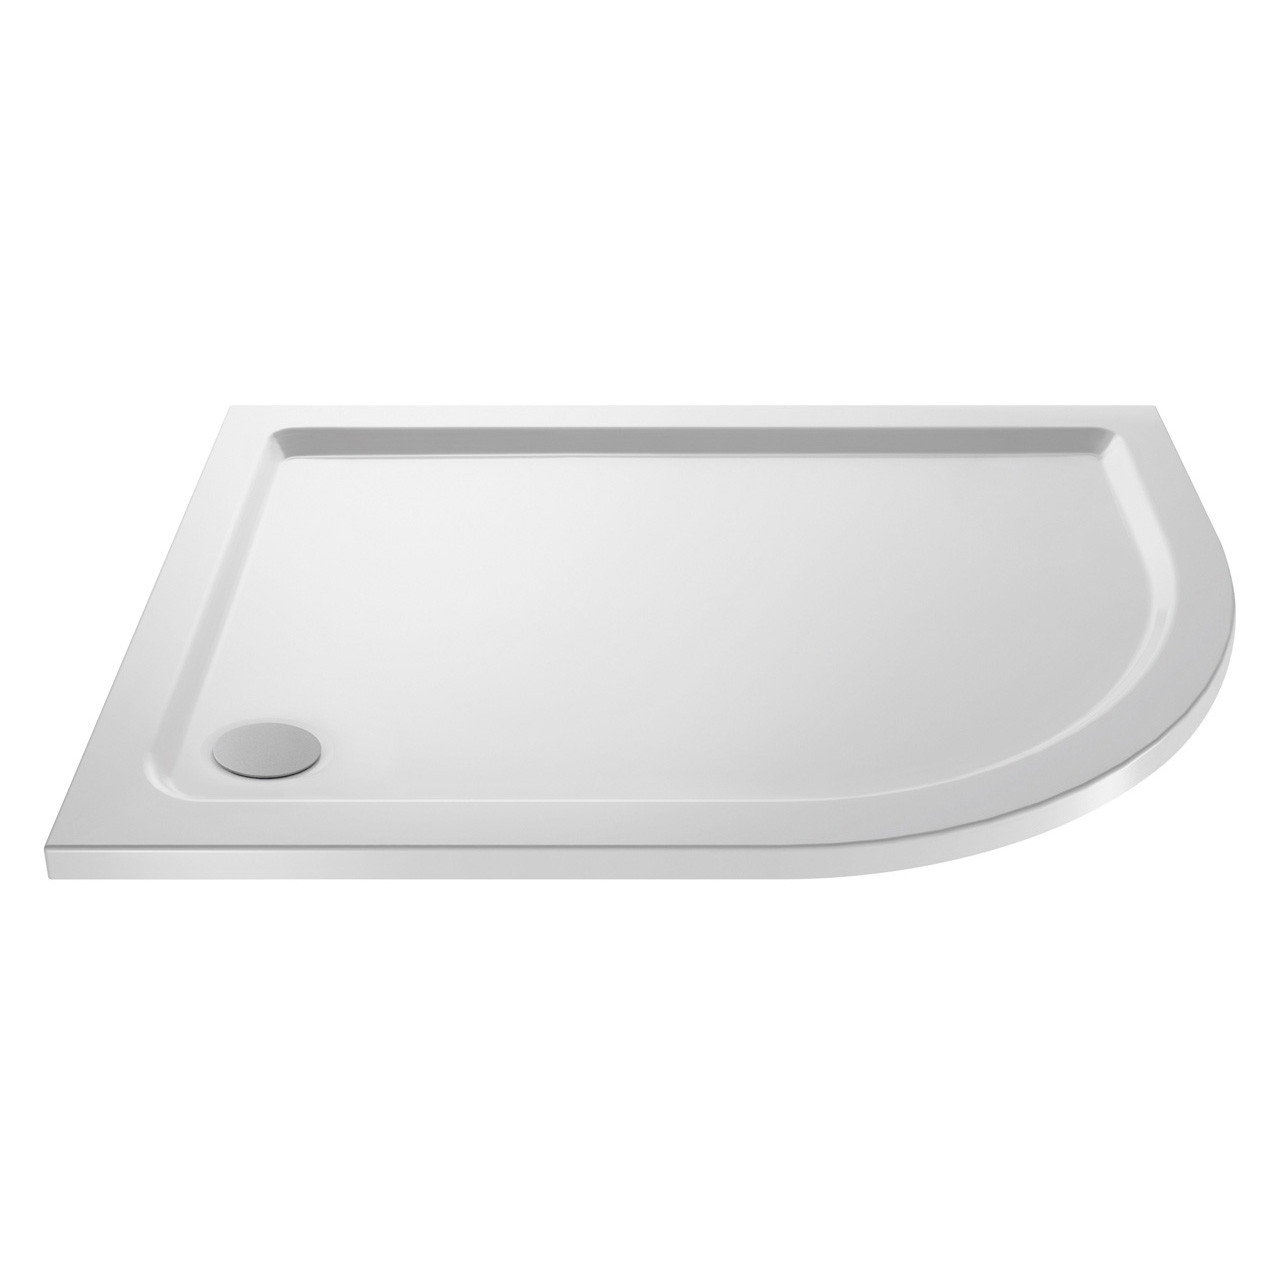 Nuie Pearlstone 1000mm x 800mm Right Hand Offset Quadrant Shower Tray - NTP109